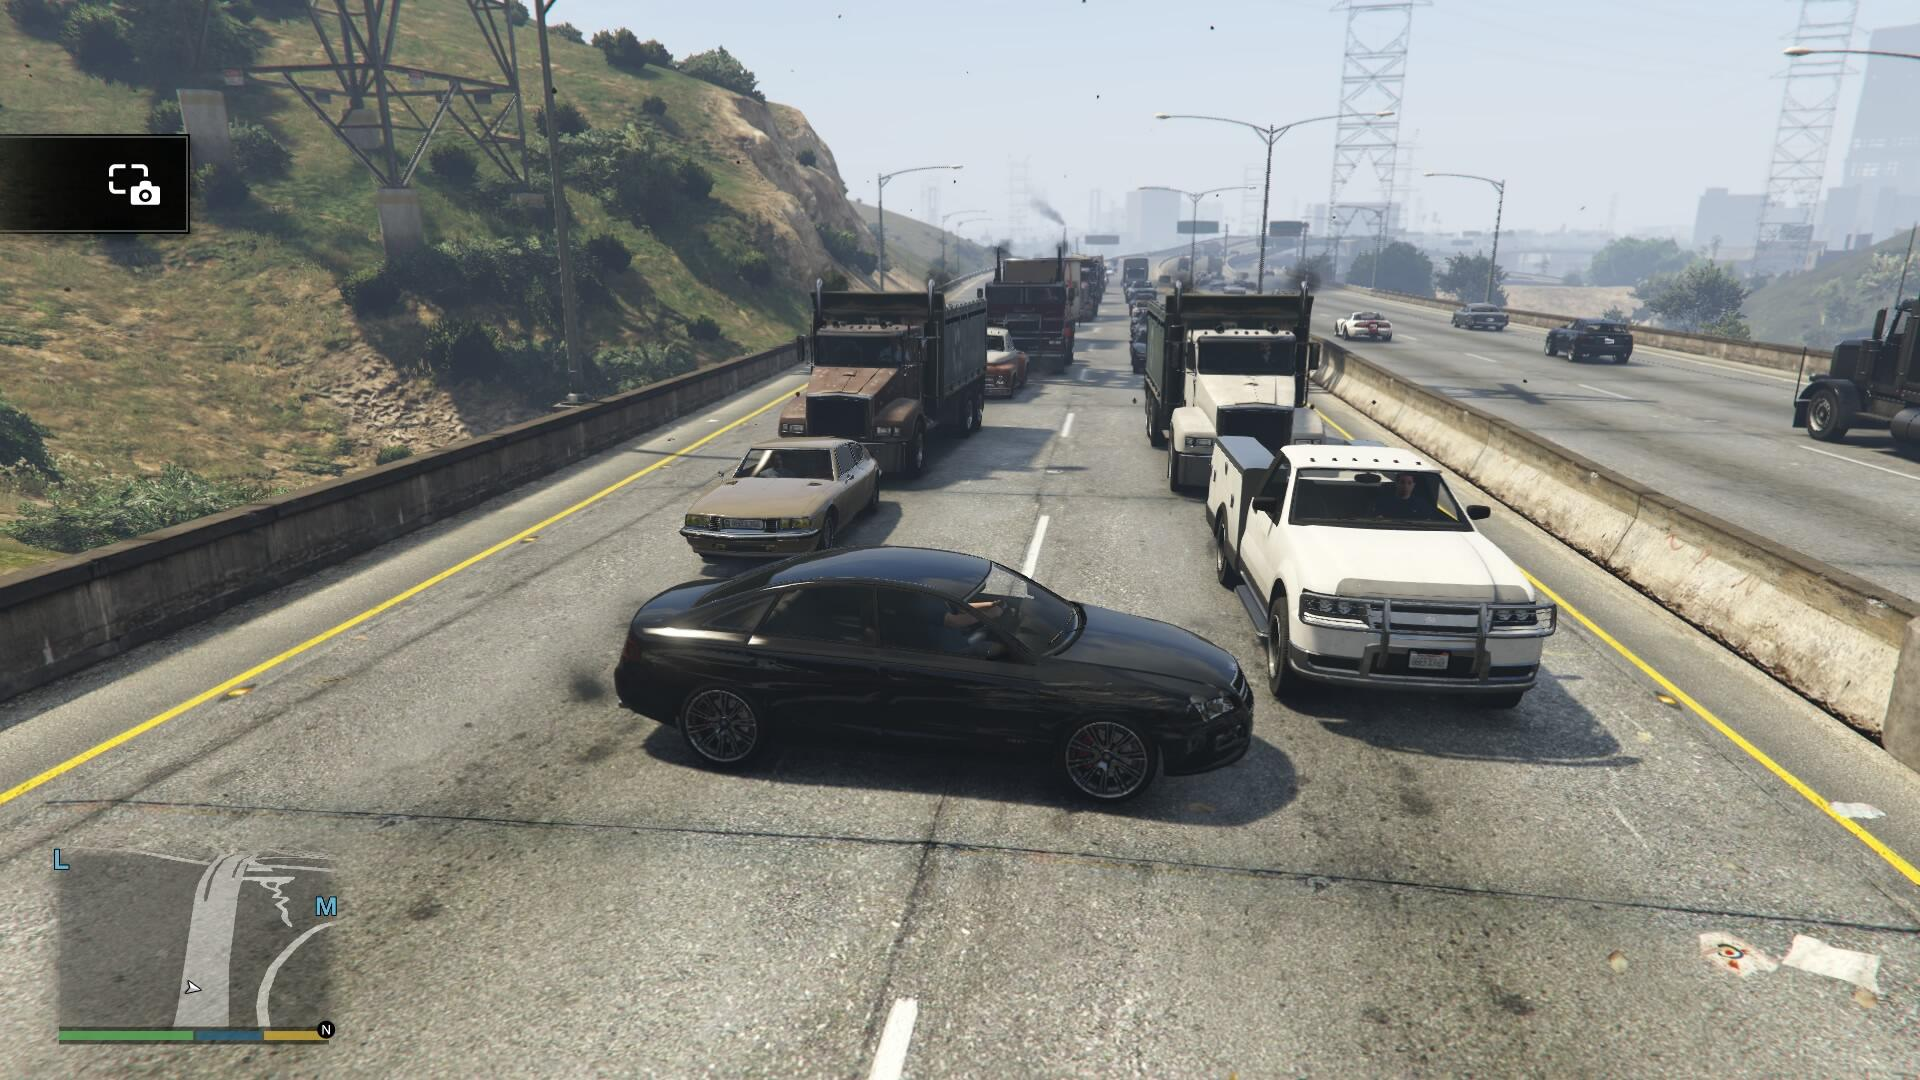 Grand Theft Auto V Modding Platform's Cease-and-Desist Incurs Wrath of Players [Updated]